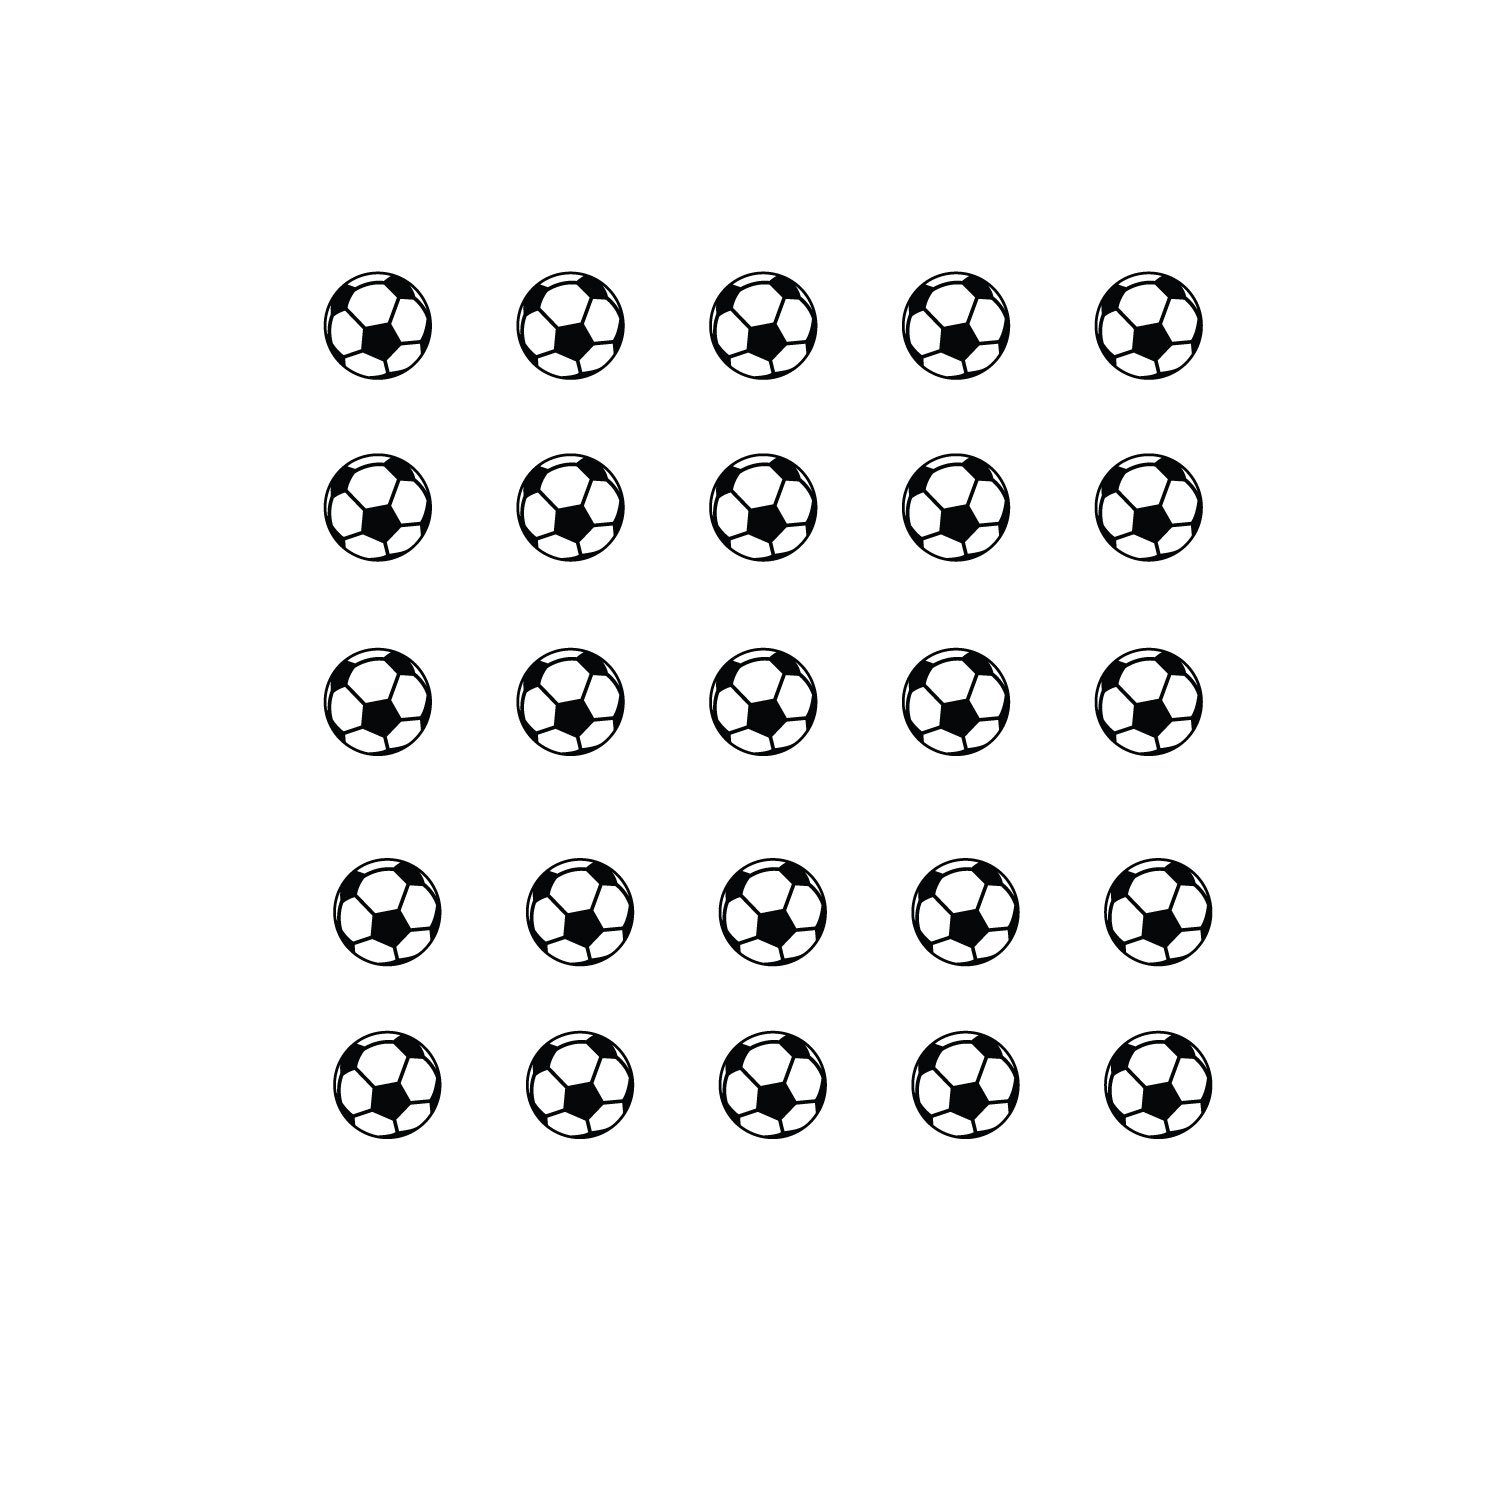 Kids Bedroom Sports Vinyl Wall Decal Stickers 1.5 x 1.5 Each one Pack of 25 Soccer Balls Childrens Room Wall Decor for Boys and Girls Vinyl Wall Art Decals